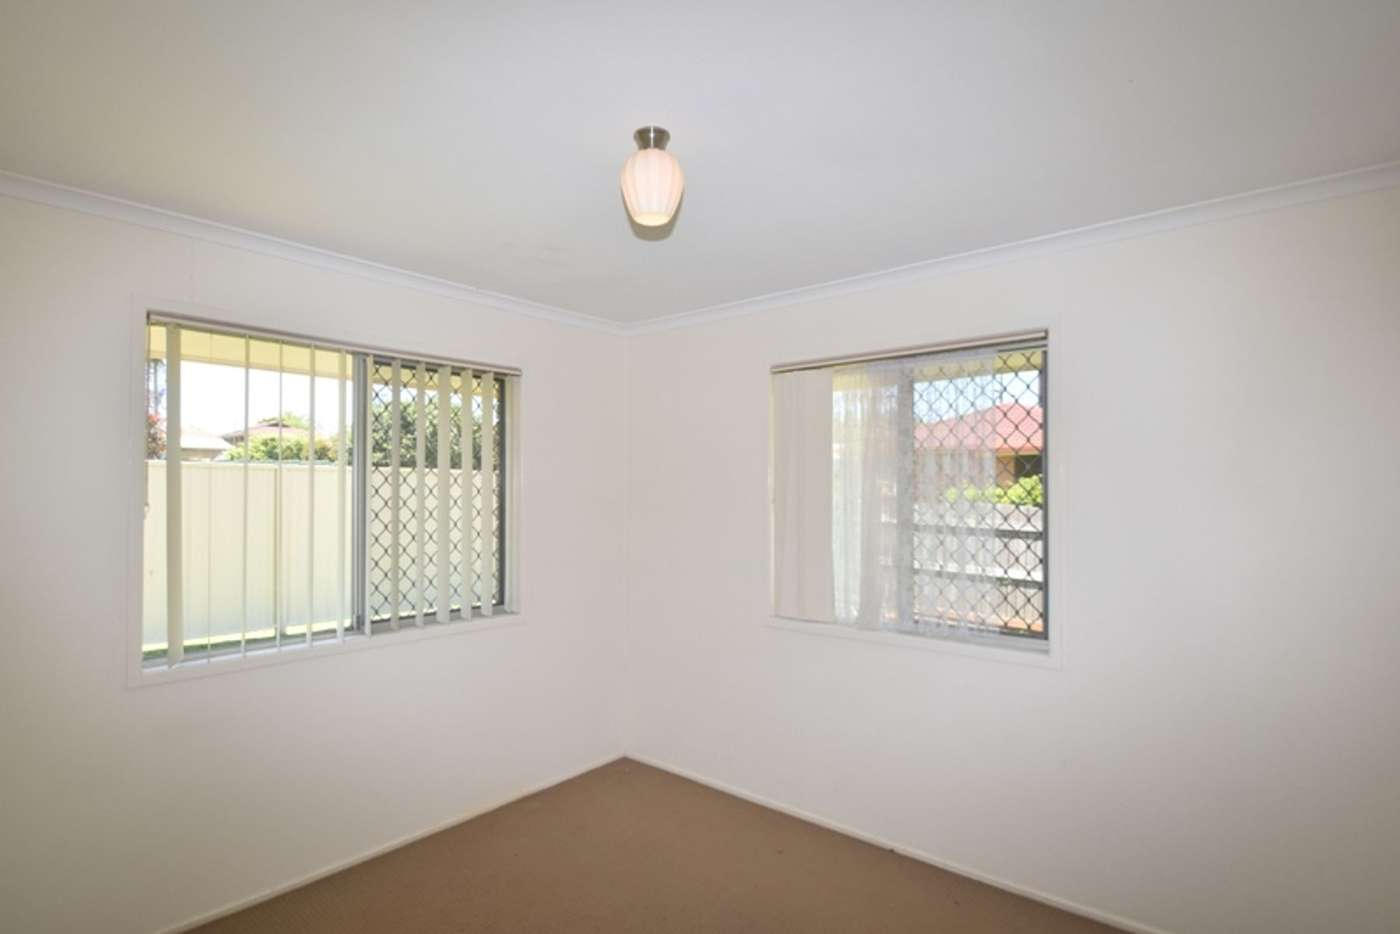 Sixth view of Homely unit listing, 2/36 Crotty Street, Centenary Heights QLD 4350